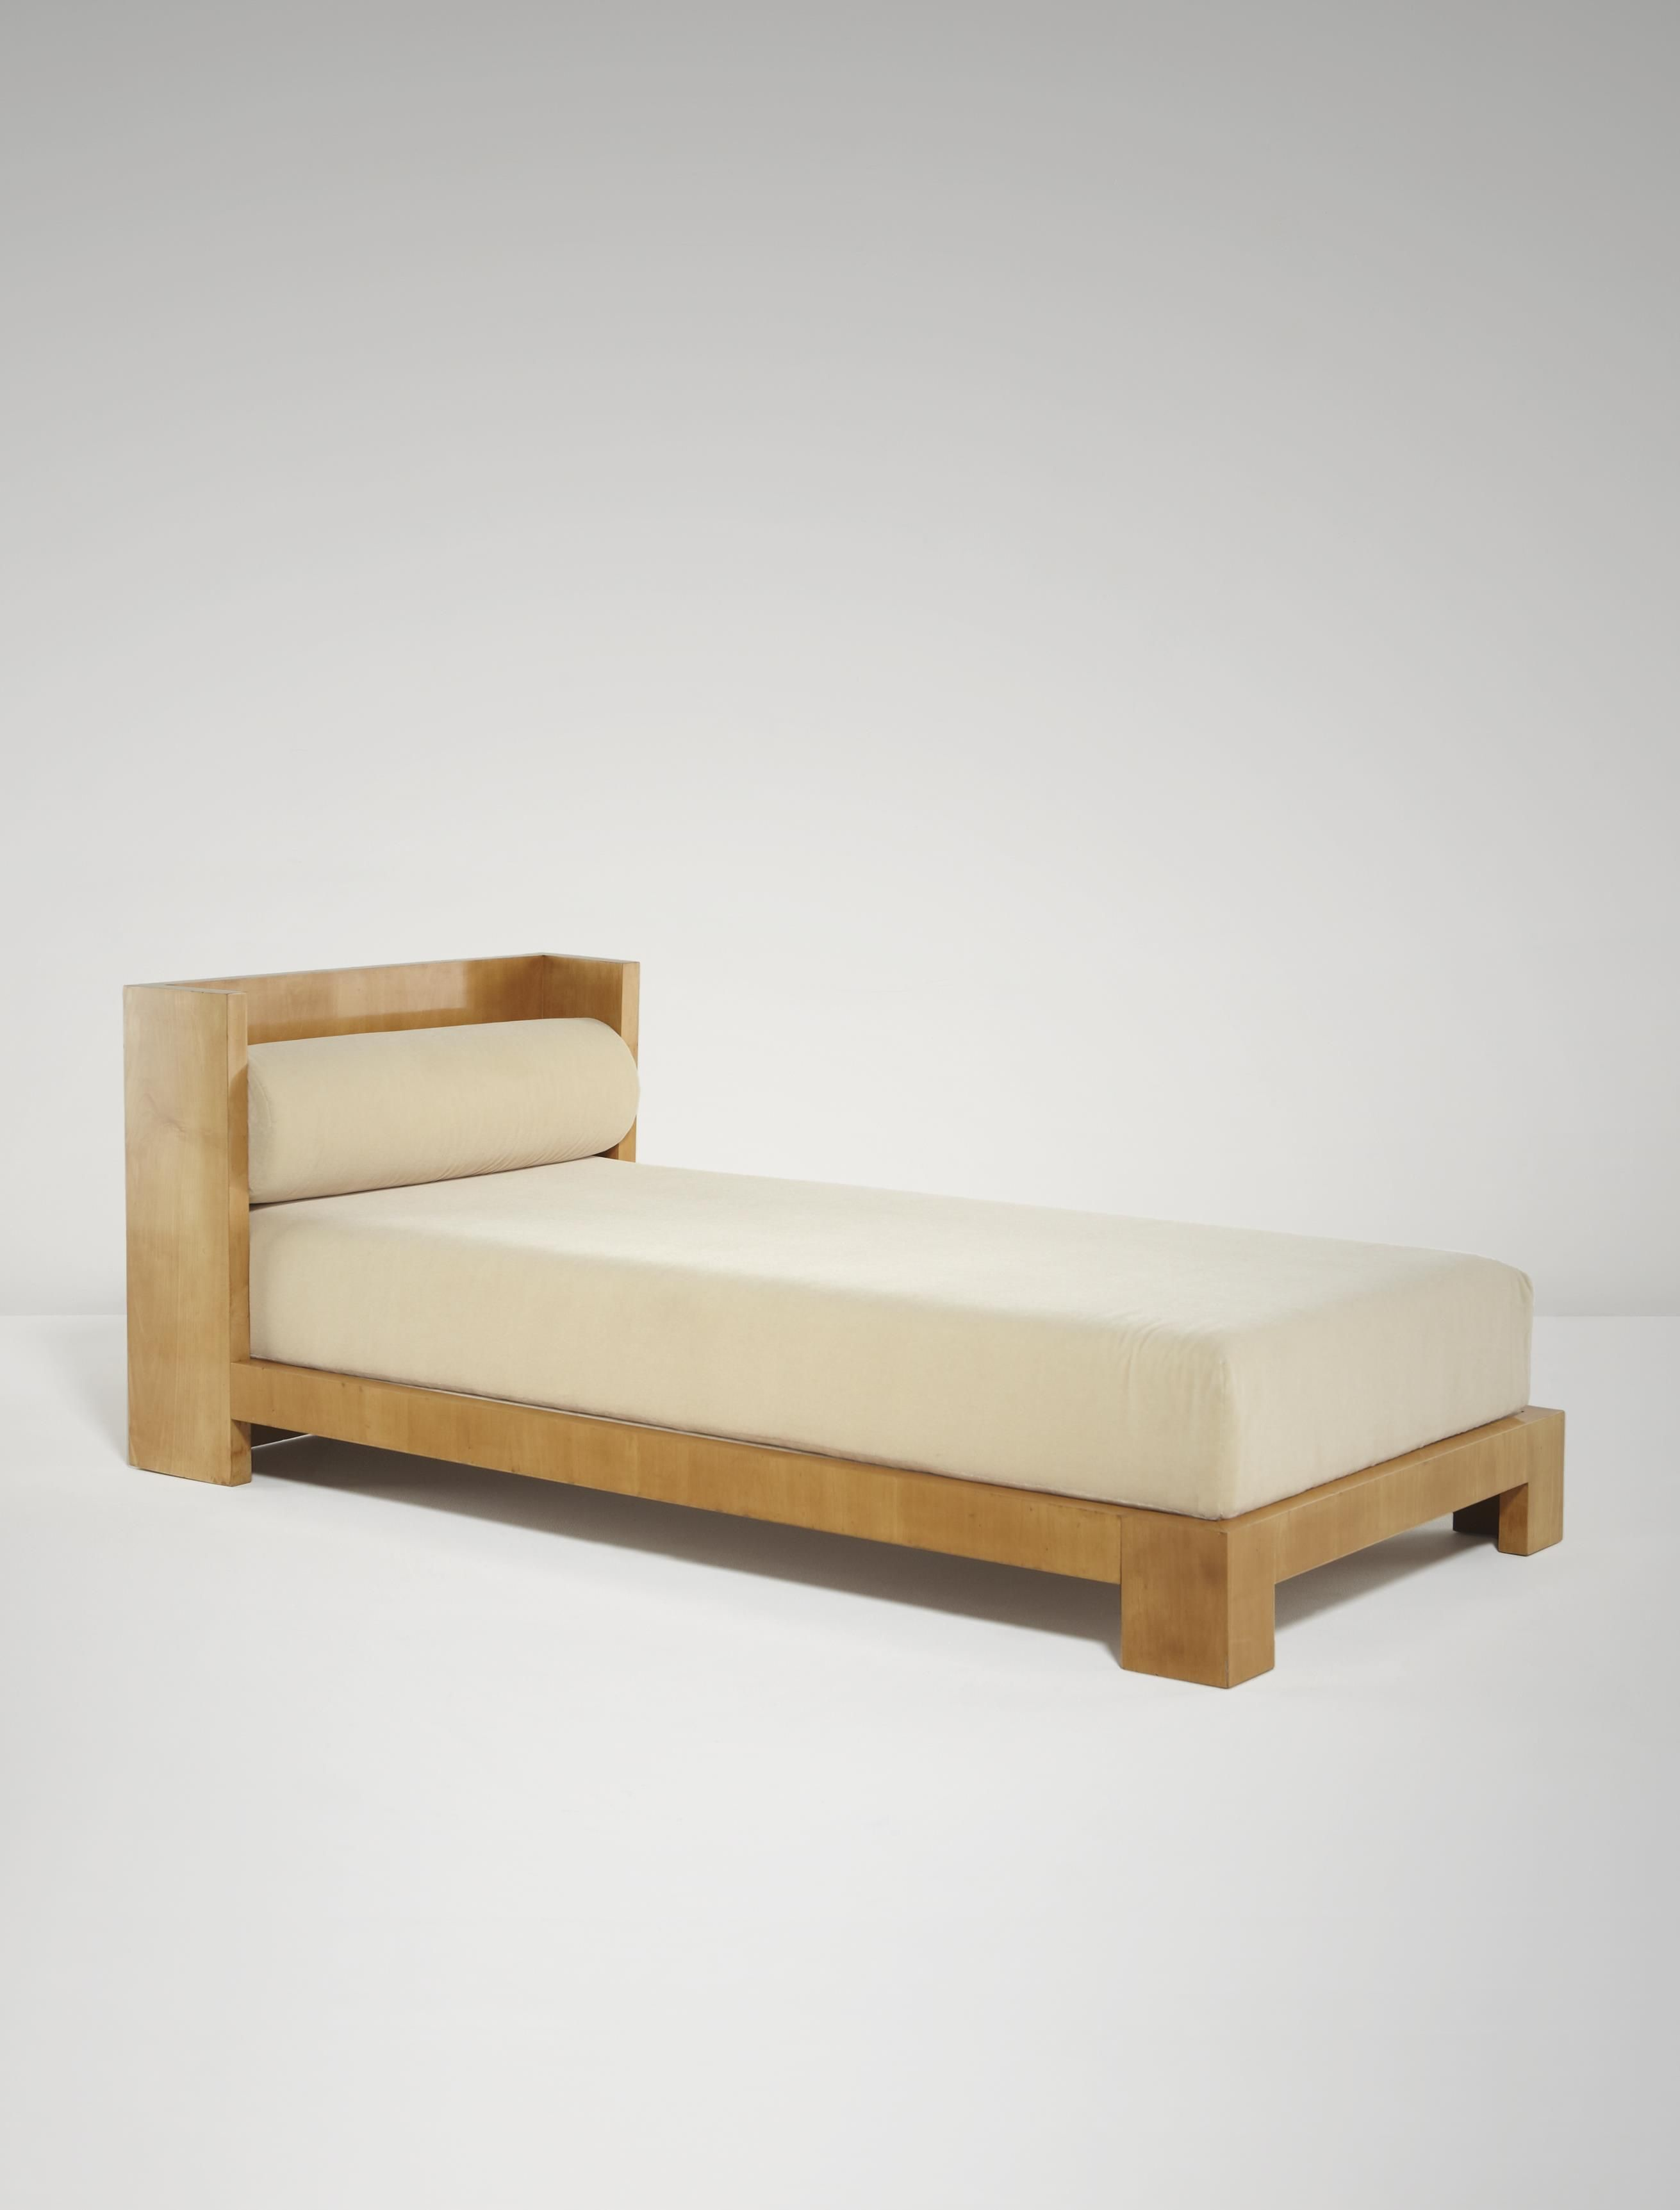 Sofa Jequitiba Nova America Jean RoyÈre Daybed Ca 1930 Maple Veneered Wood Metal 31 5 8 X